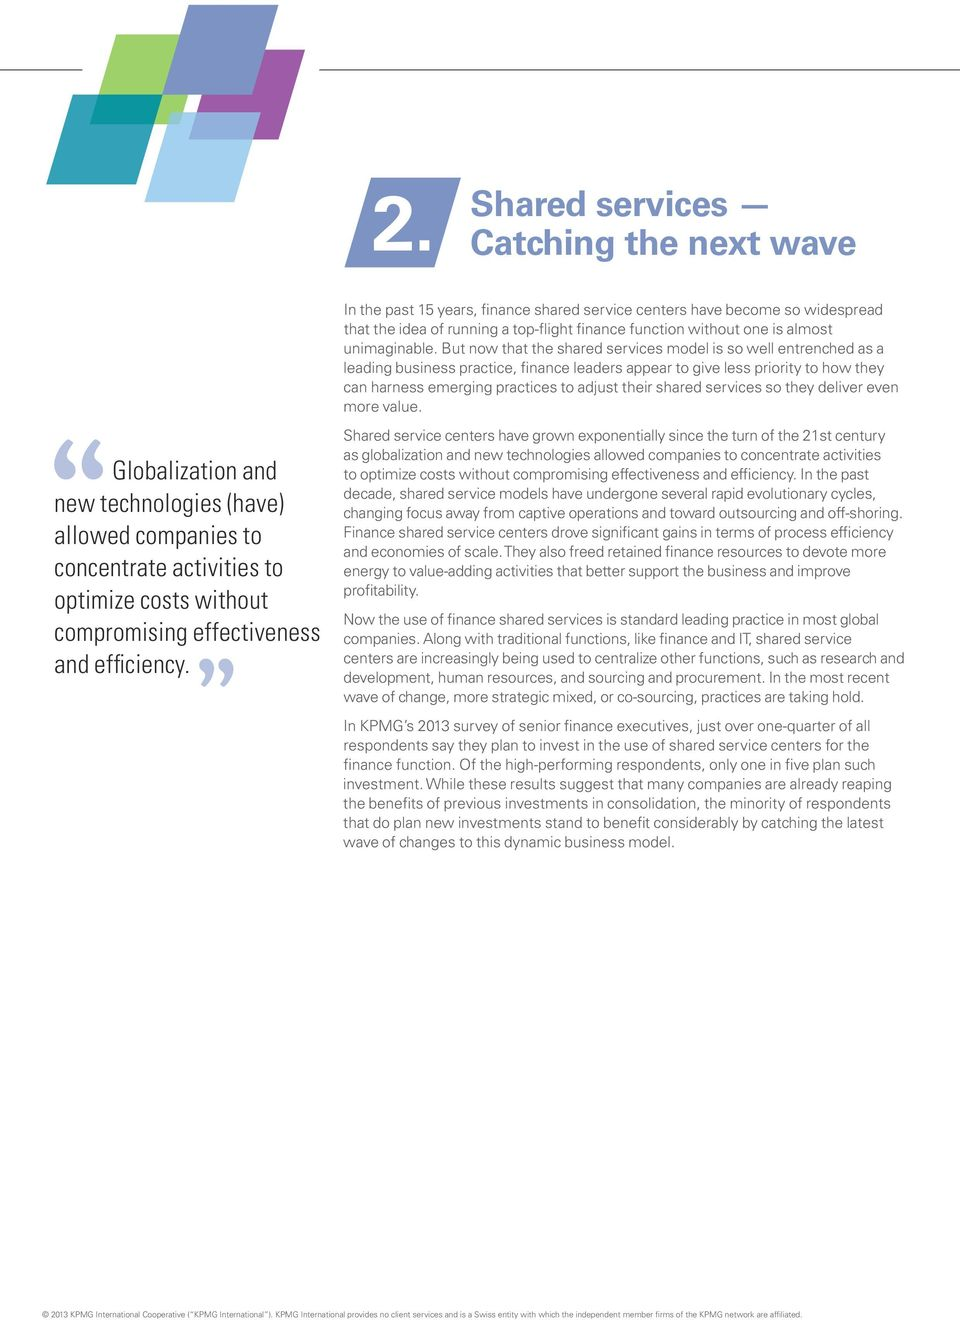 But now that the shared services model is so well entrenched as a leading business practice, finance leaders appear to give less priority to how they can harness emerging practices to adjust their